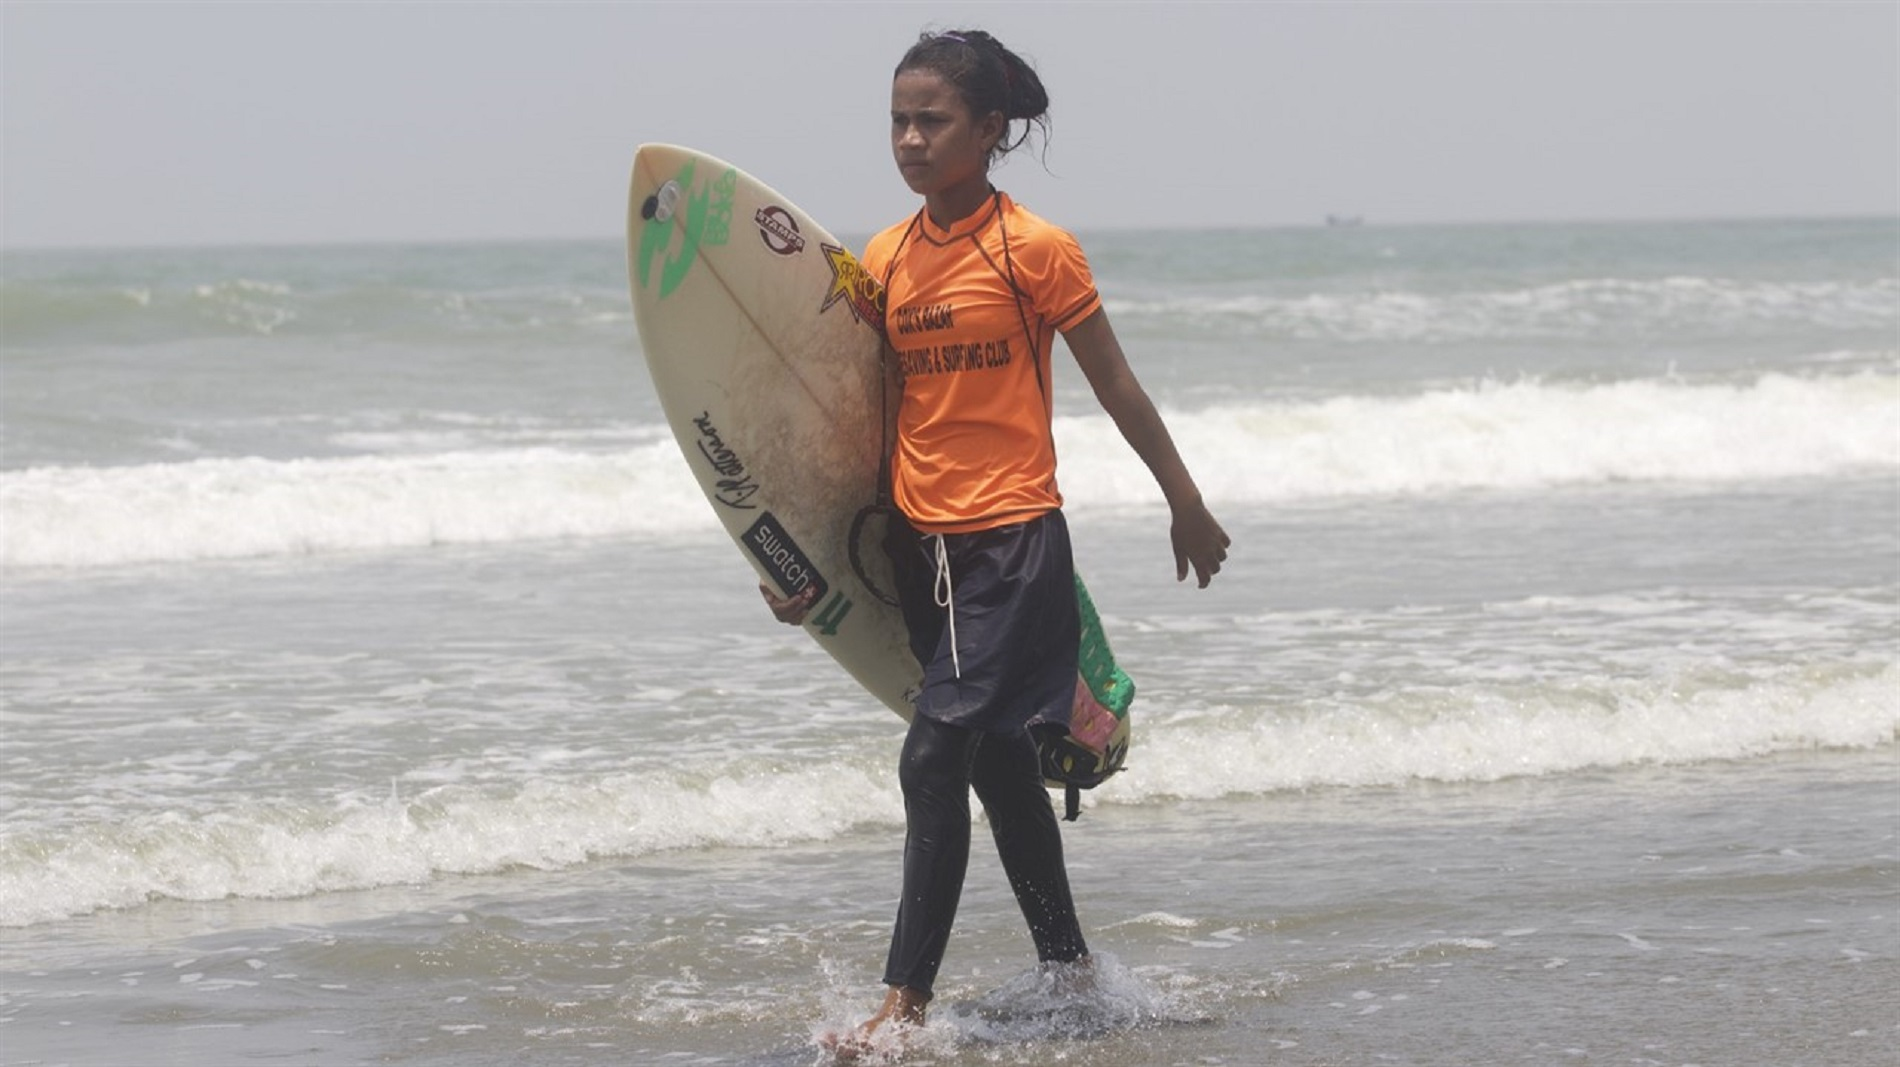 Hot Docs 2021: Bangla Surf Girls Review